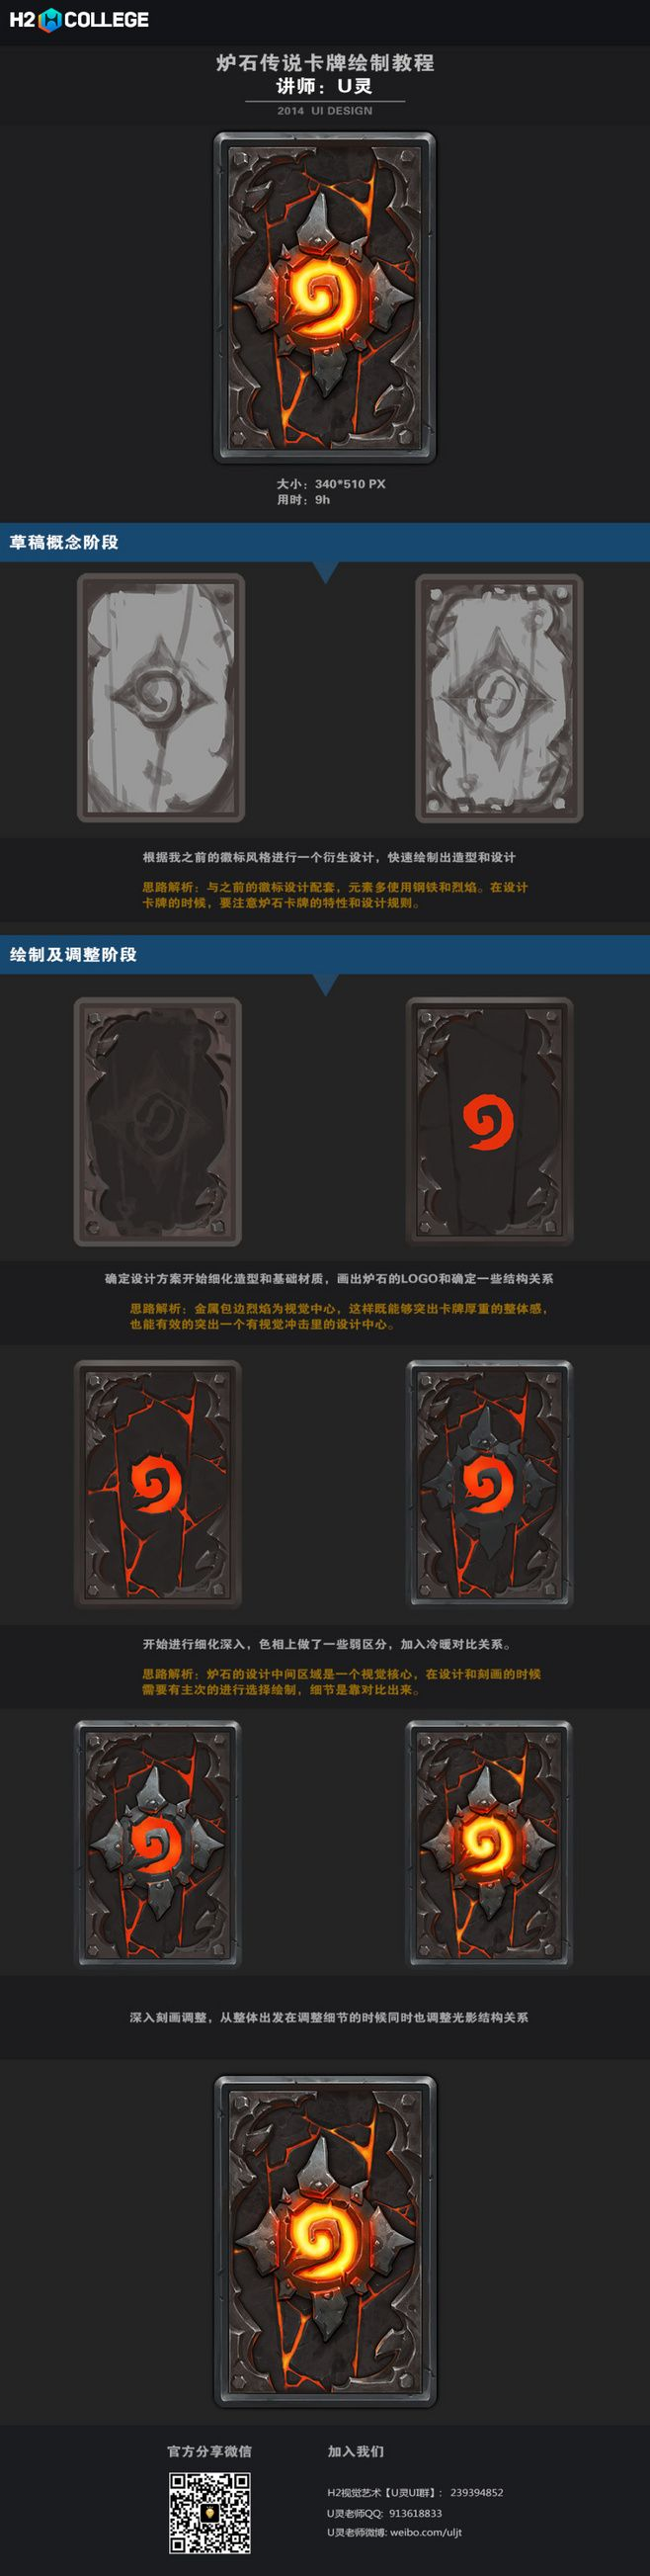 原创作品:【H2学院】炉石卡牌绘制教程 ... card game book cover painting drawing resource tool how to tutorial instructions | Create your own roleplaying game material w/ RPG Bard: www.rpgbard.com | Writing inspiration for Dungeons and Dragons DND D&D Pathfinder PFRPG Warhammer 40k Star Wars Shadowrun Call of Cthulhu Lord of the Rings LoTR + d20 fantasy science fiction scifi horror design | Not Trusty Sword art: click artwork for source